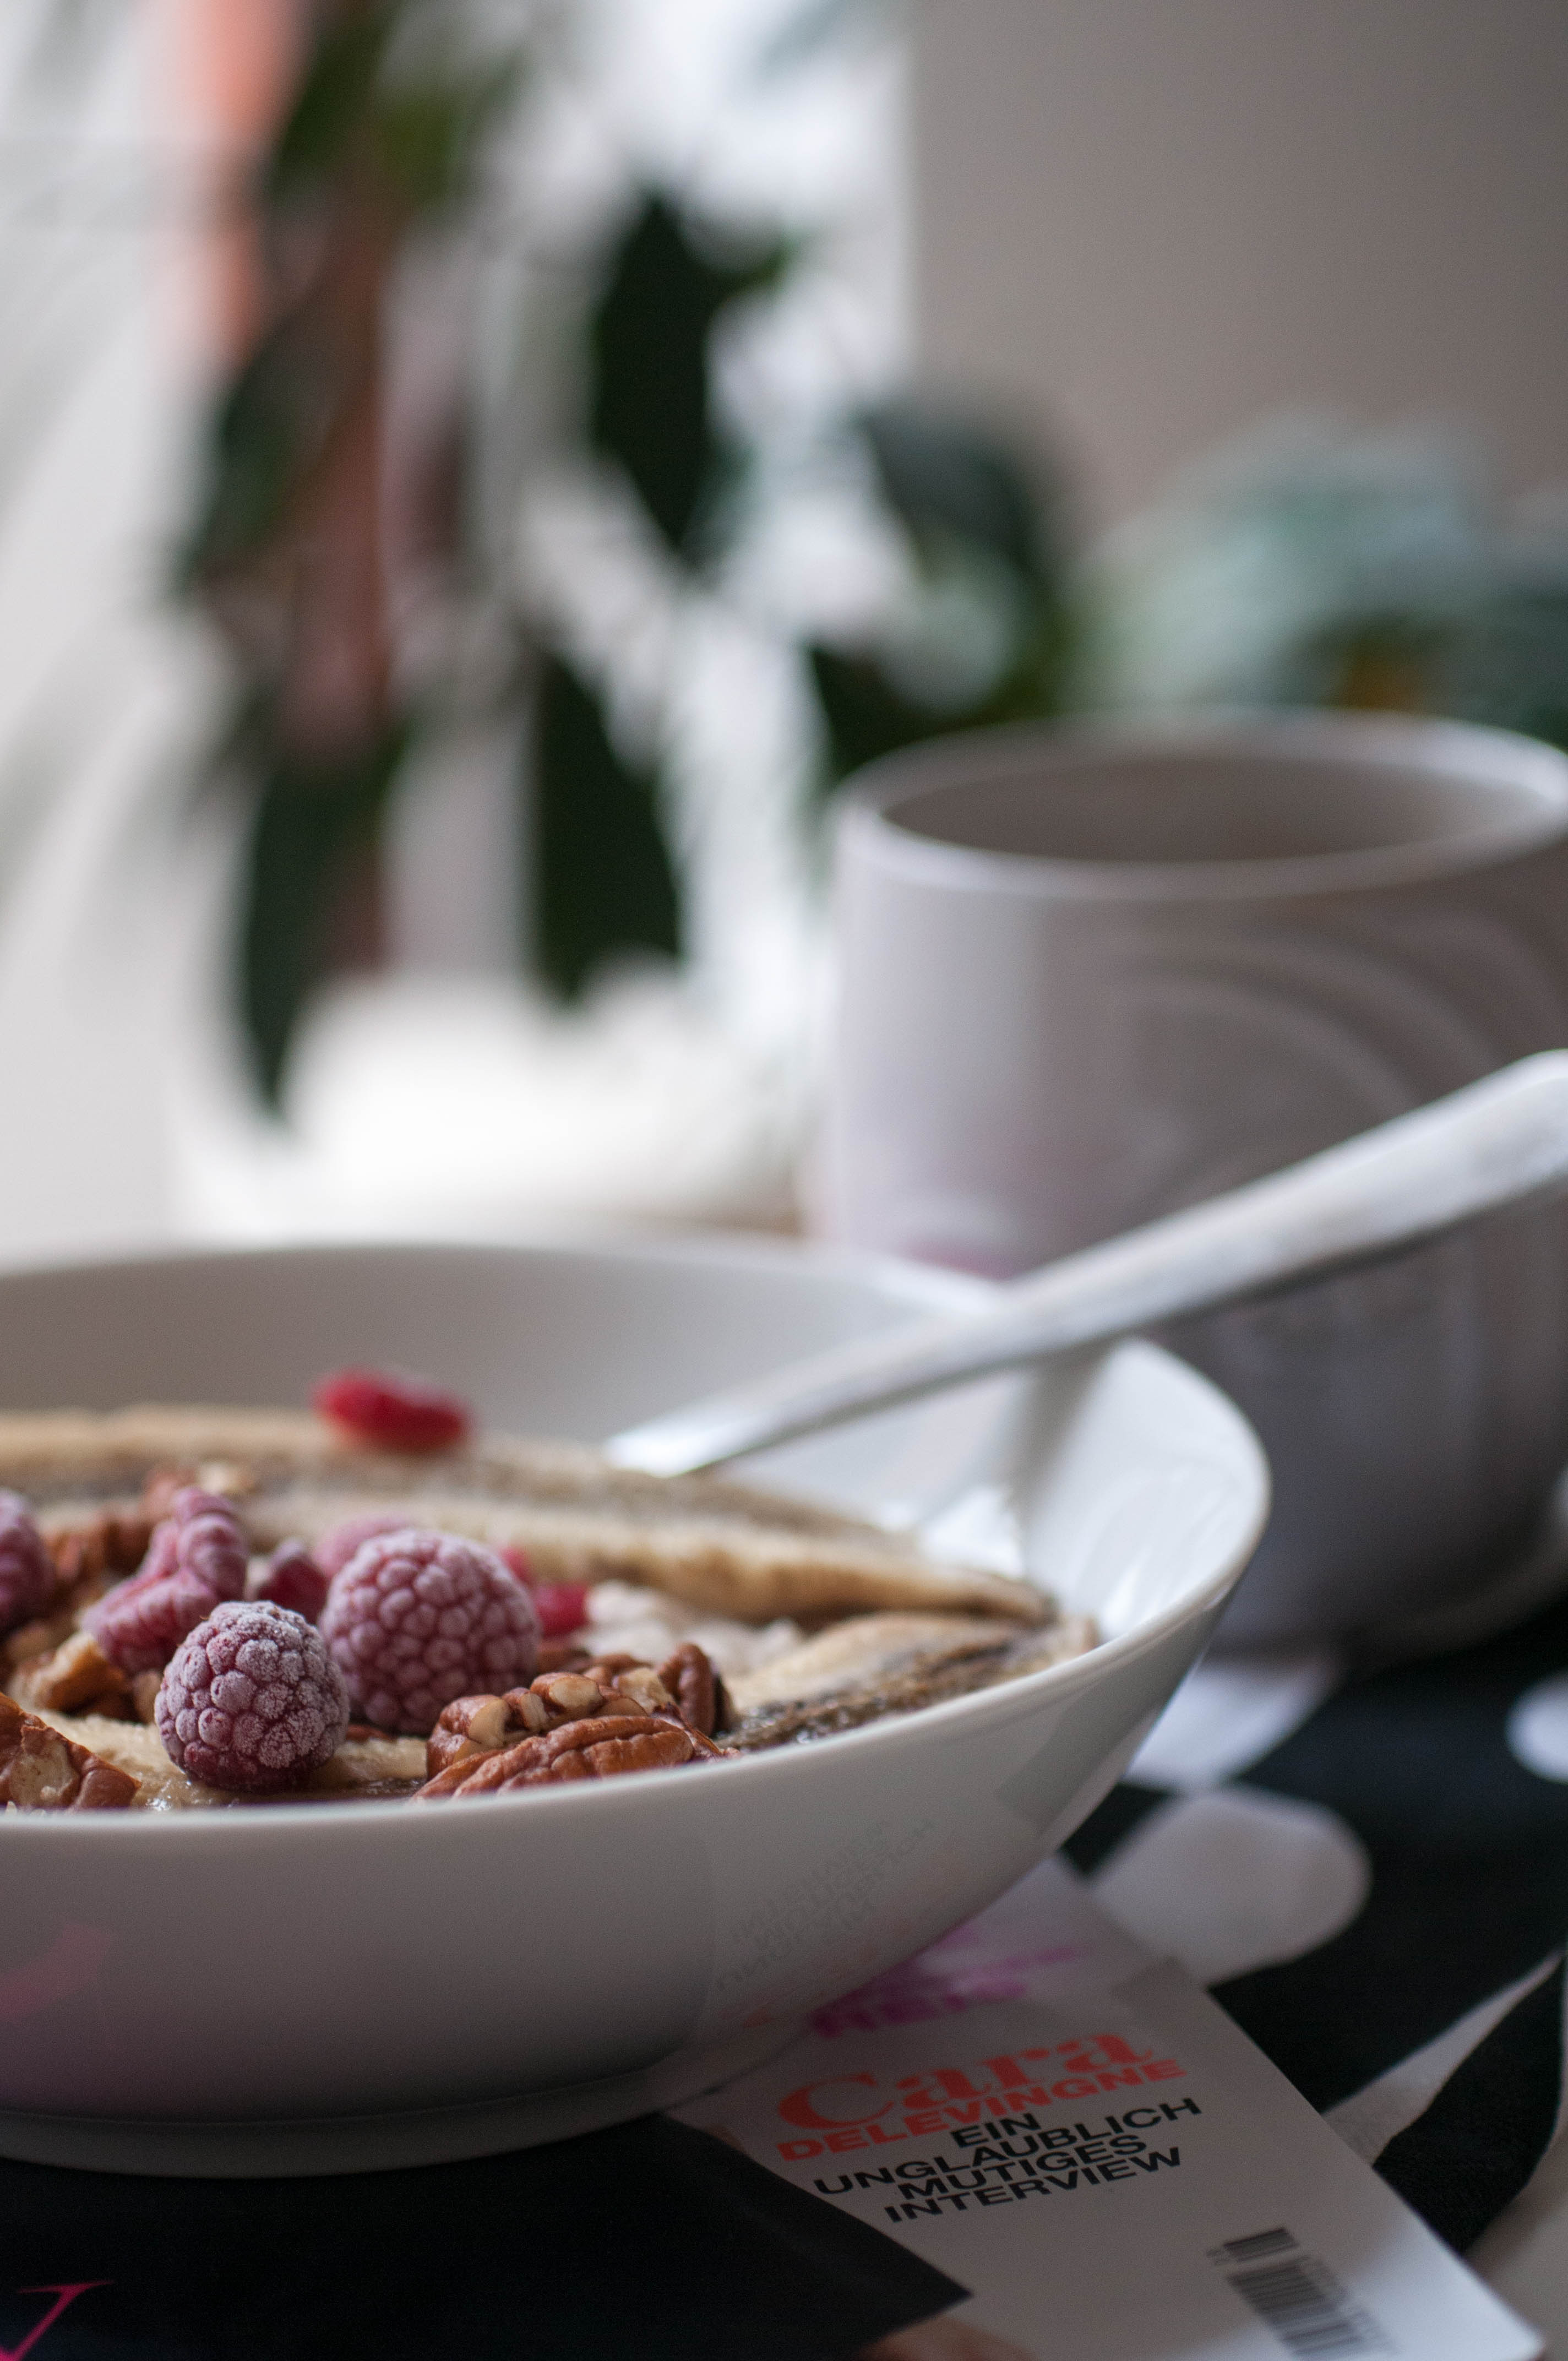 Oatmeal with Banana and Raspberry